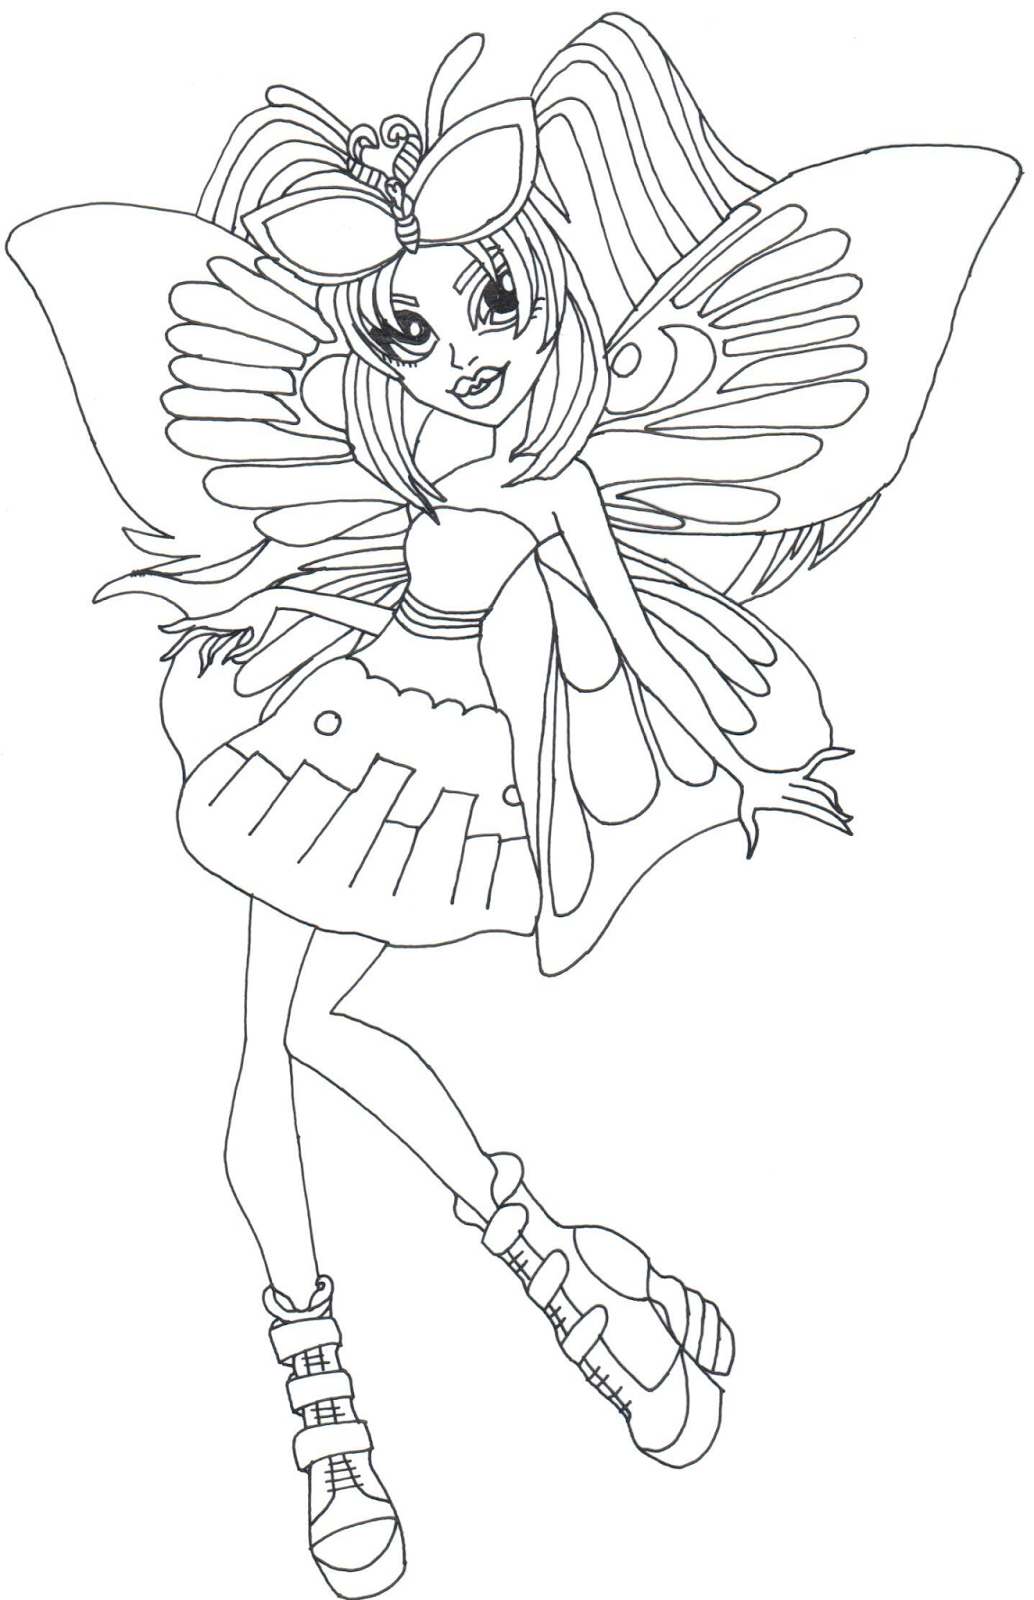 Free Printable Monster High Coloring Pages Luna Mothews Monster High Coloring Page